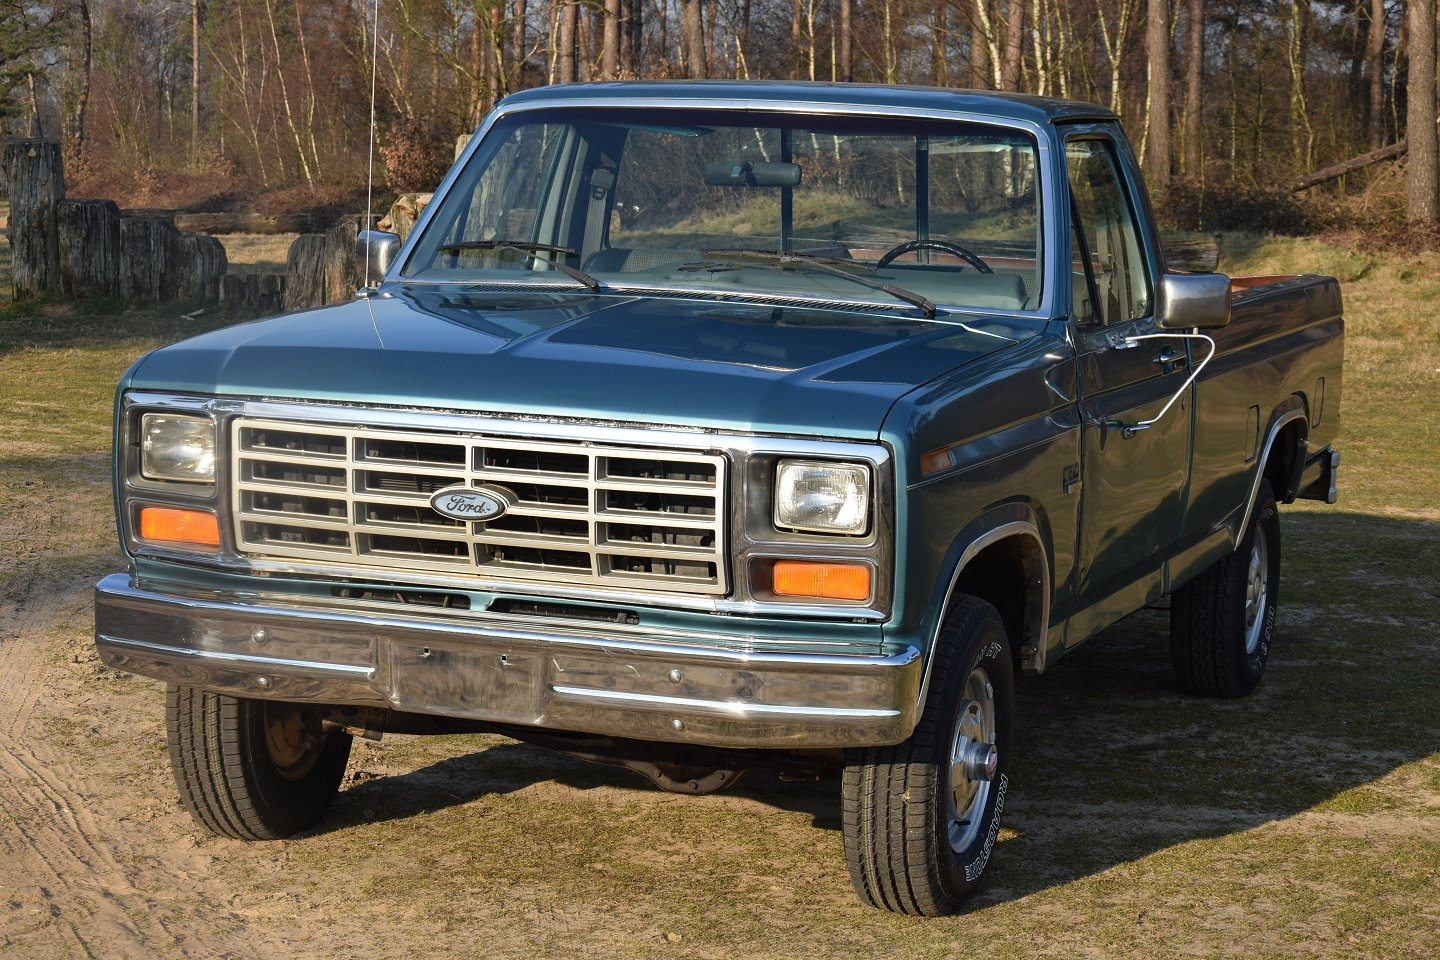 1986 Ford F150 4x4 Pick Up V8 1982 Sales Brochure Stuurman 1964 F 150 These Models Are A Great Value For Money And They Drive Well So It Is Car To Collect Or You Can Just True Classic